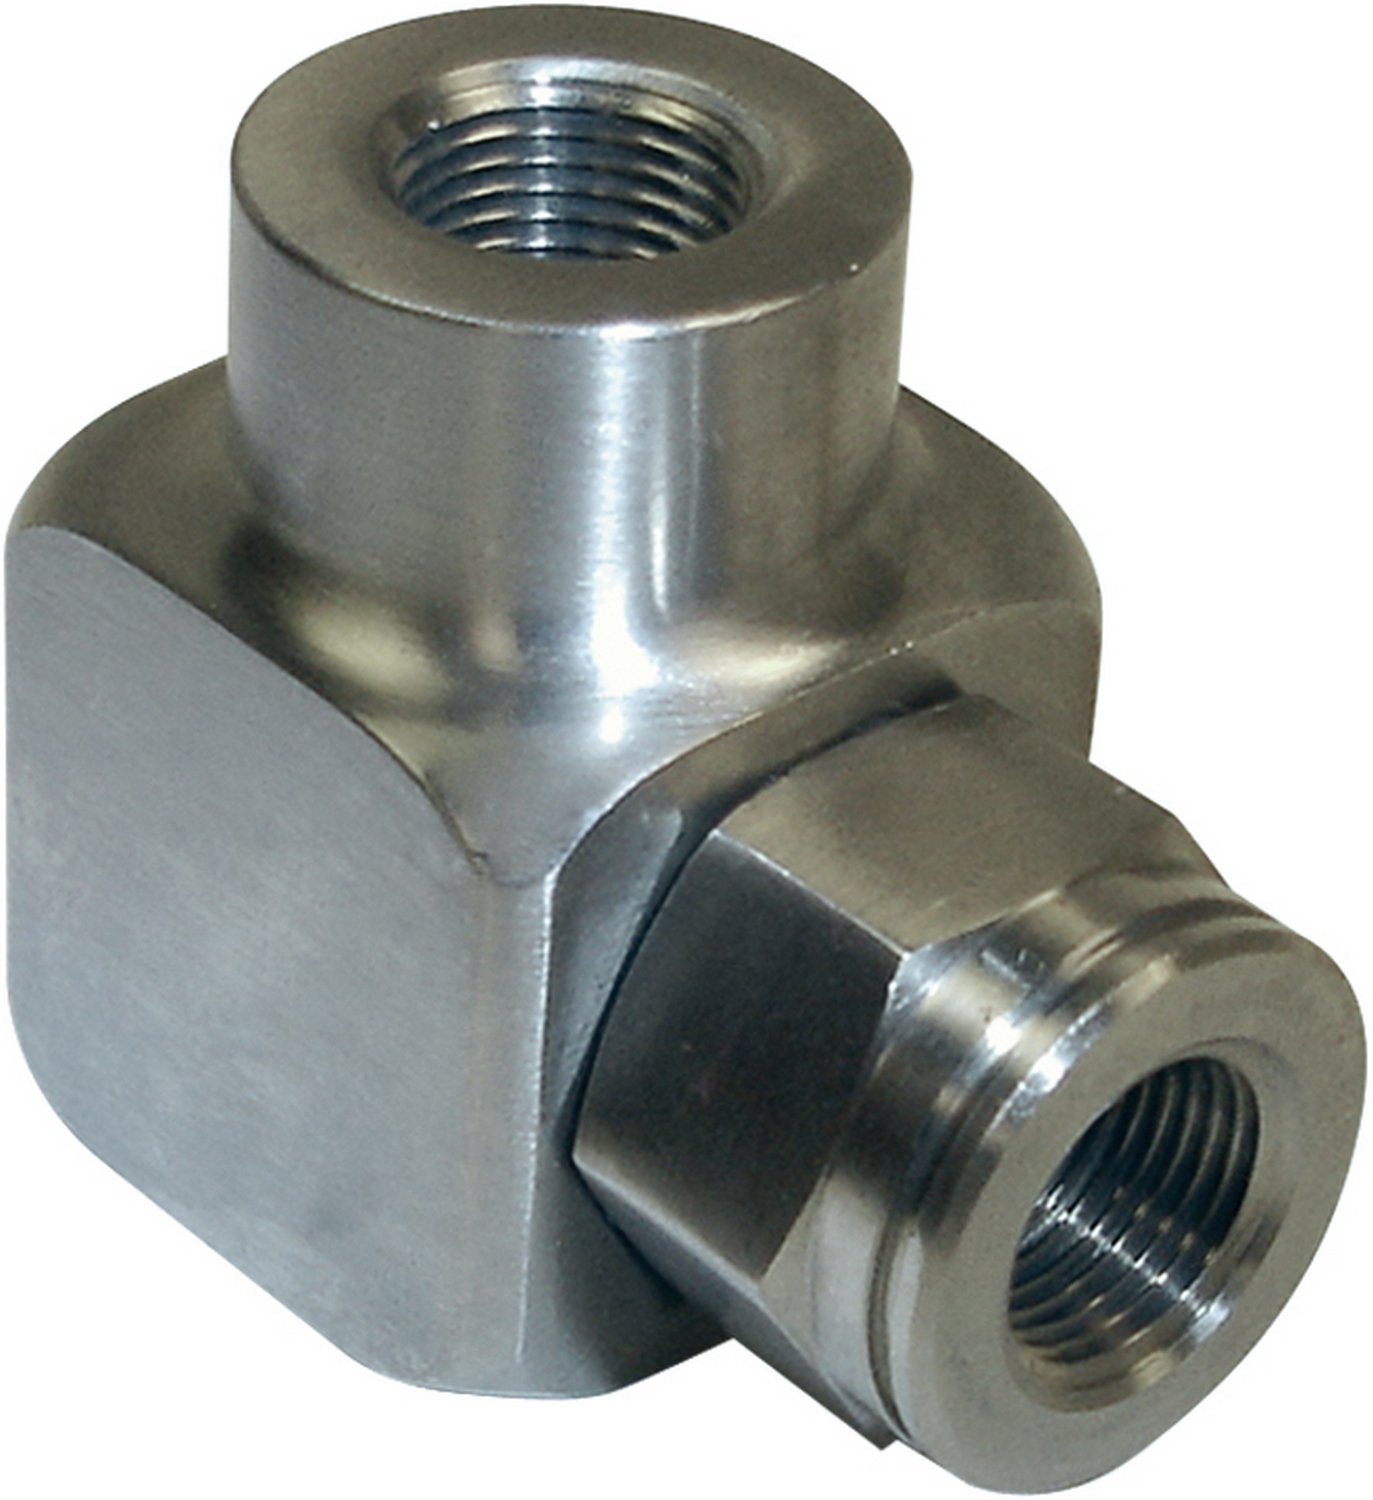 Coxreels 434-1-SS Stainless Steel Replacement Swivel with Viton Seal,Silver 1/2'' NPT